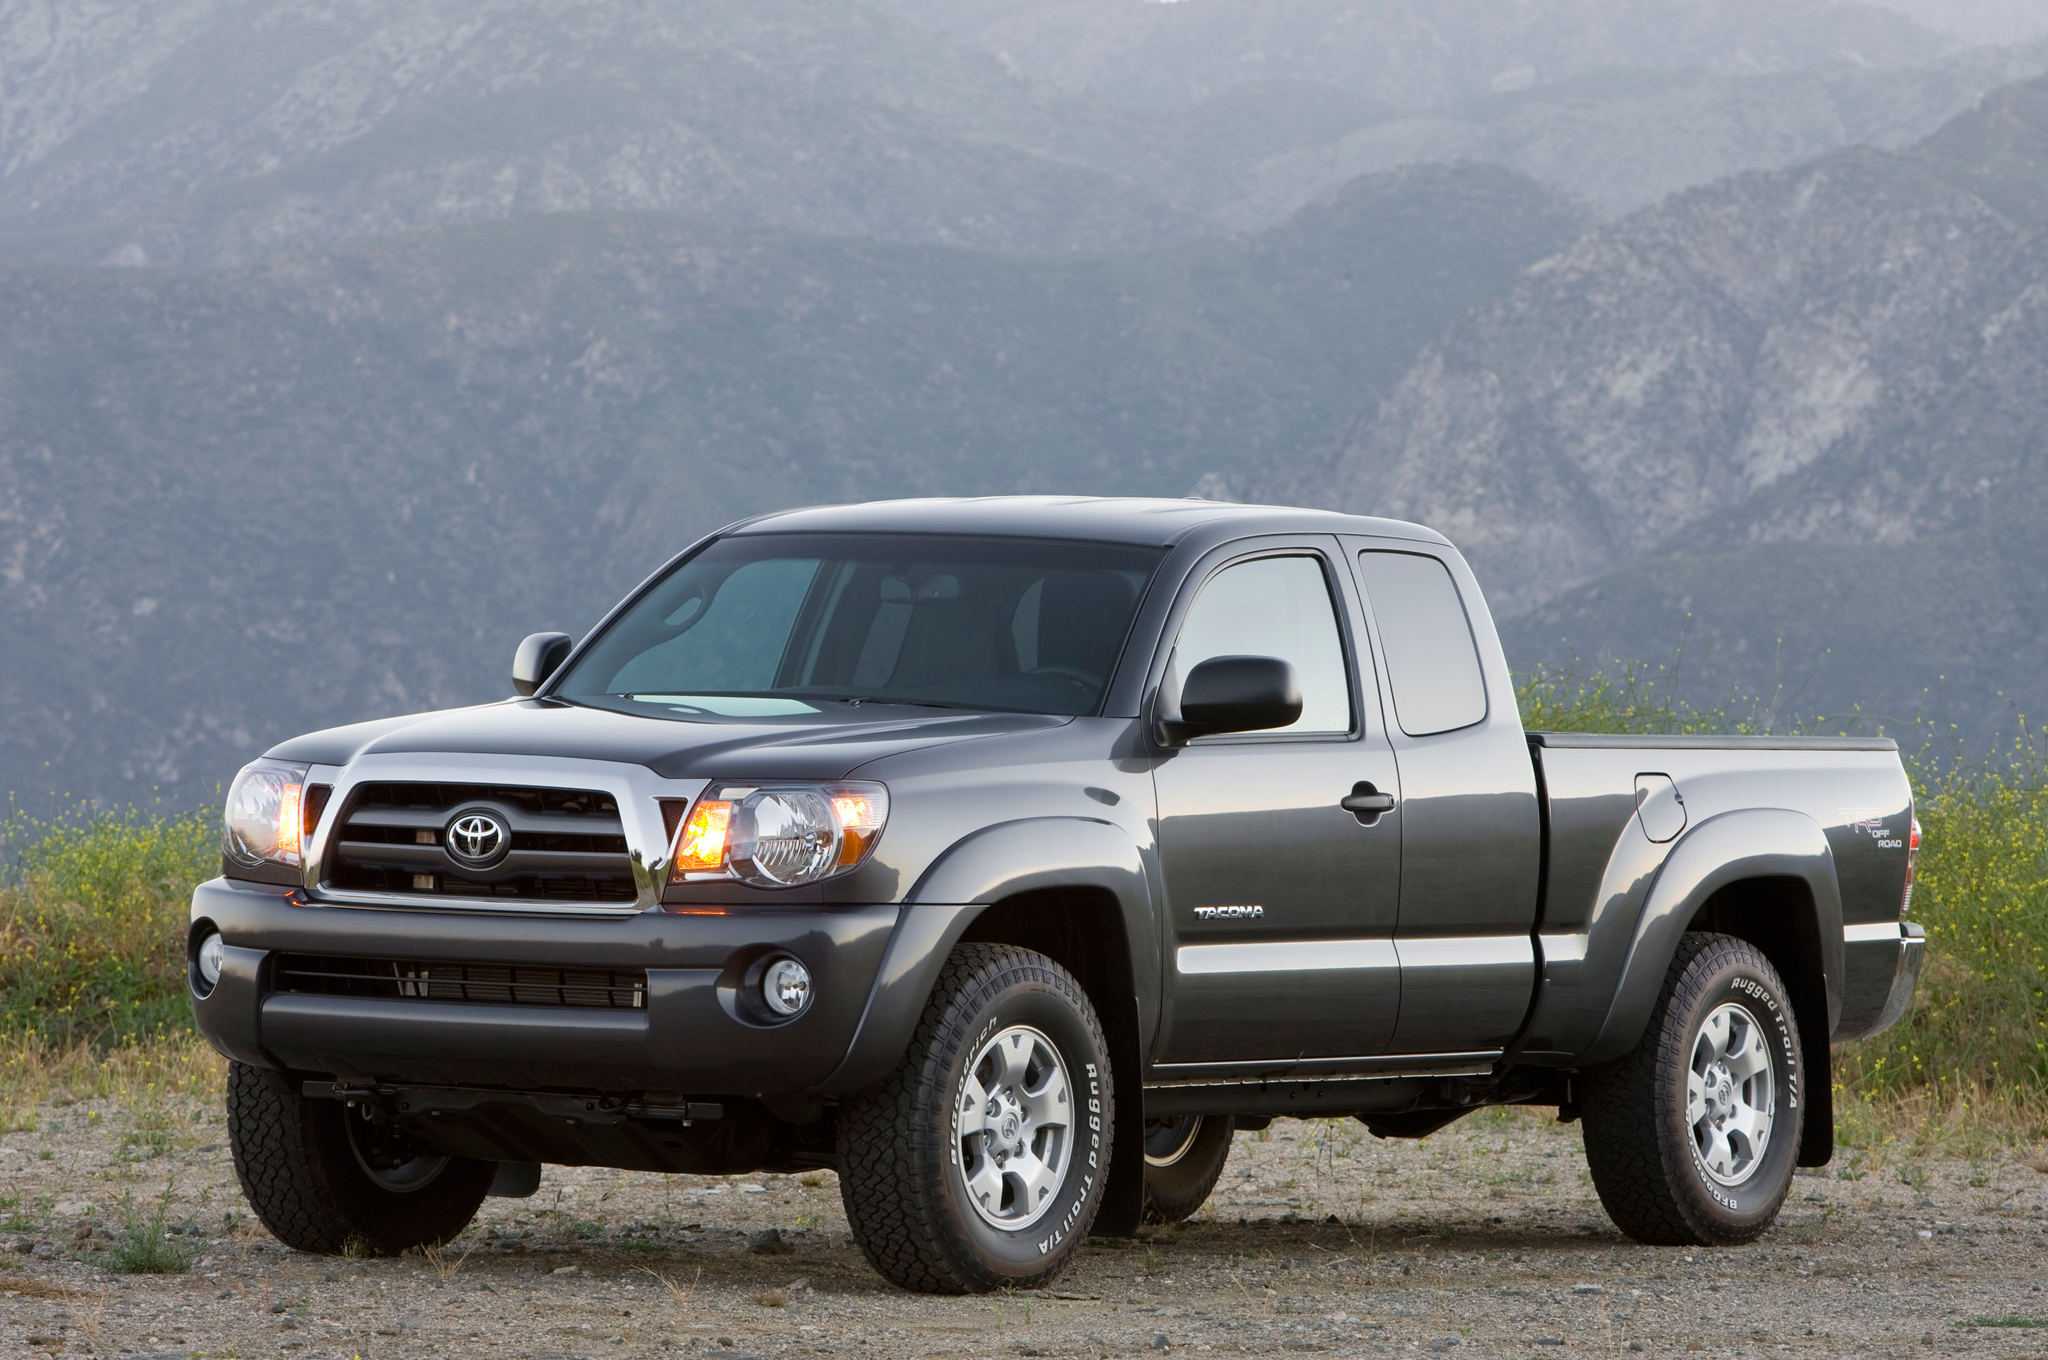 20 Years Of The Toyota Tacoma And Beyond: A Look Through The Years   Motor  Trend